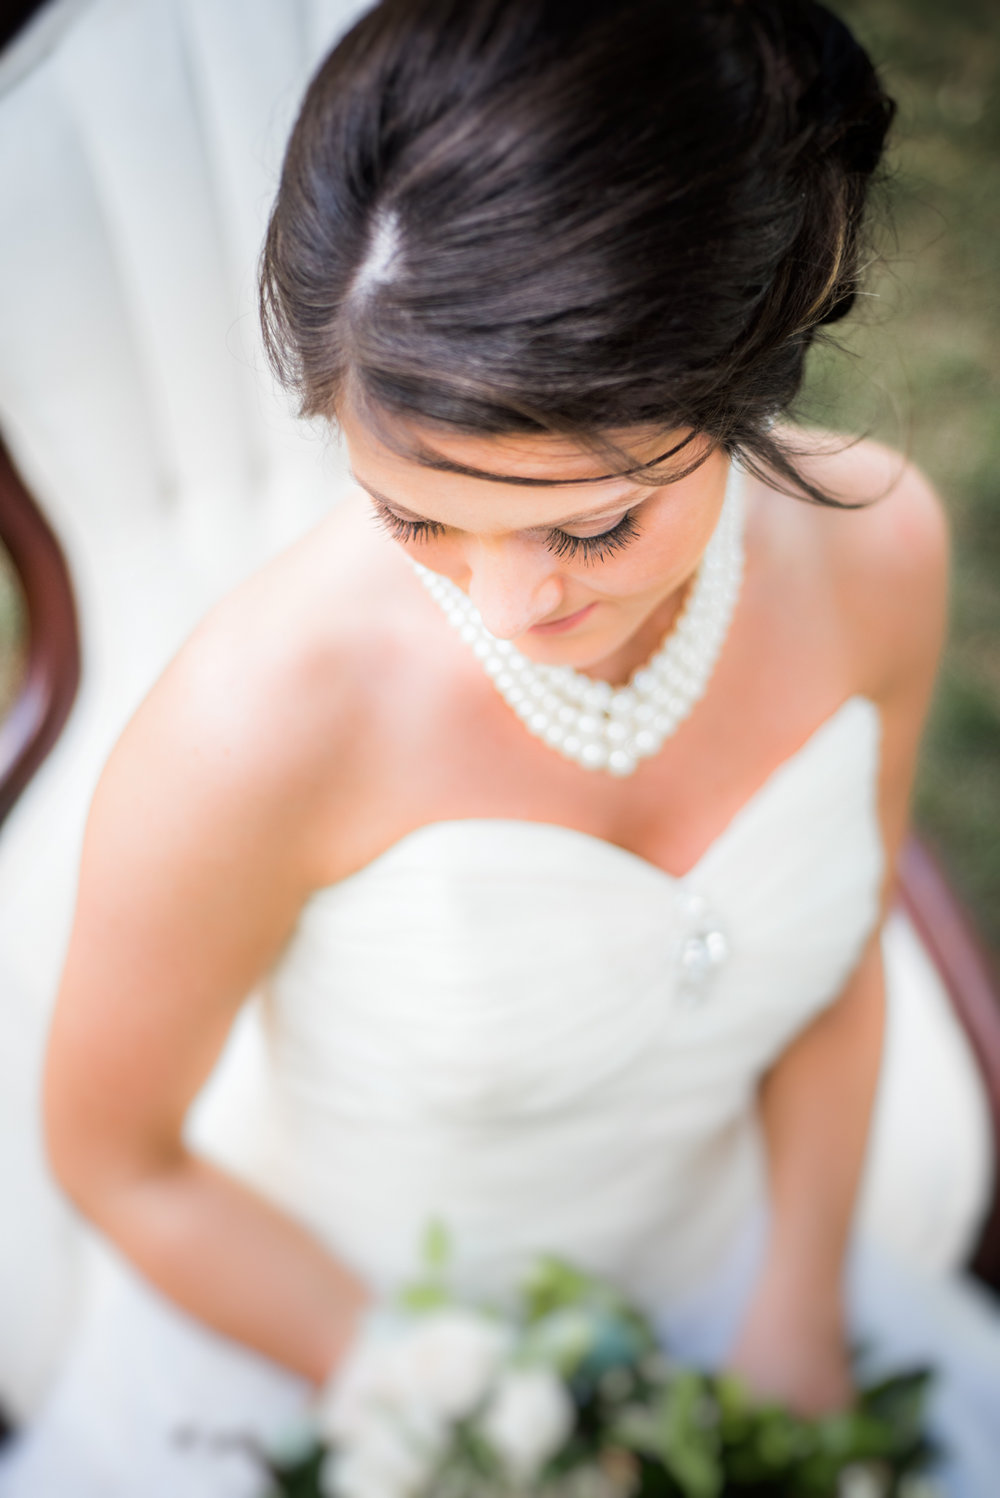 styled_shoot_kentucky-8332-Edit.jpg